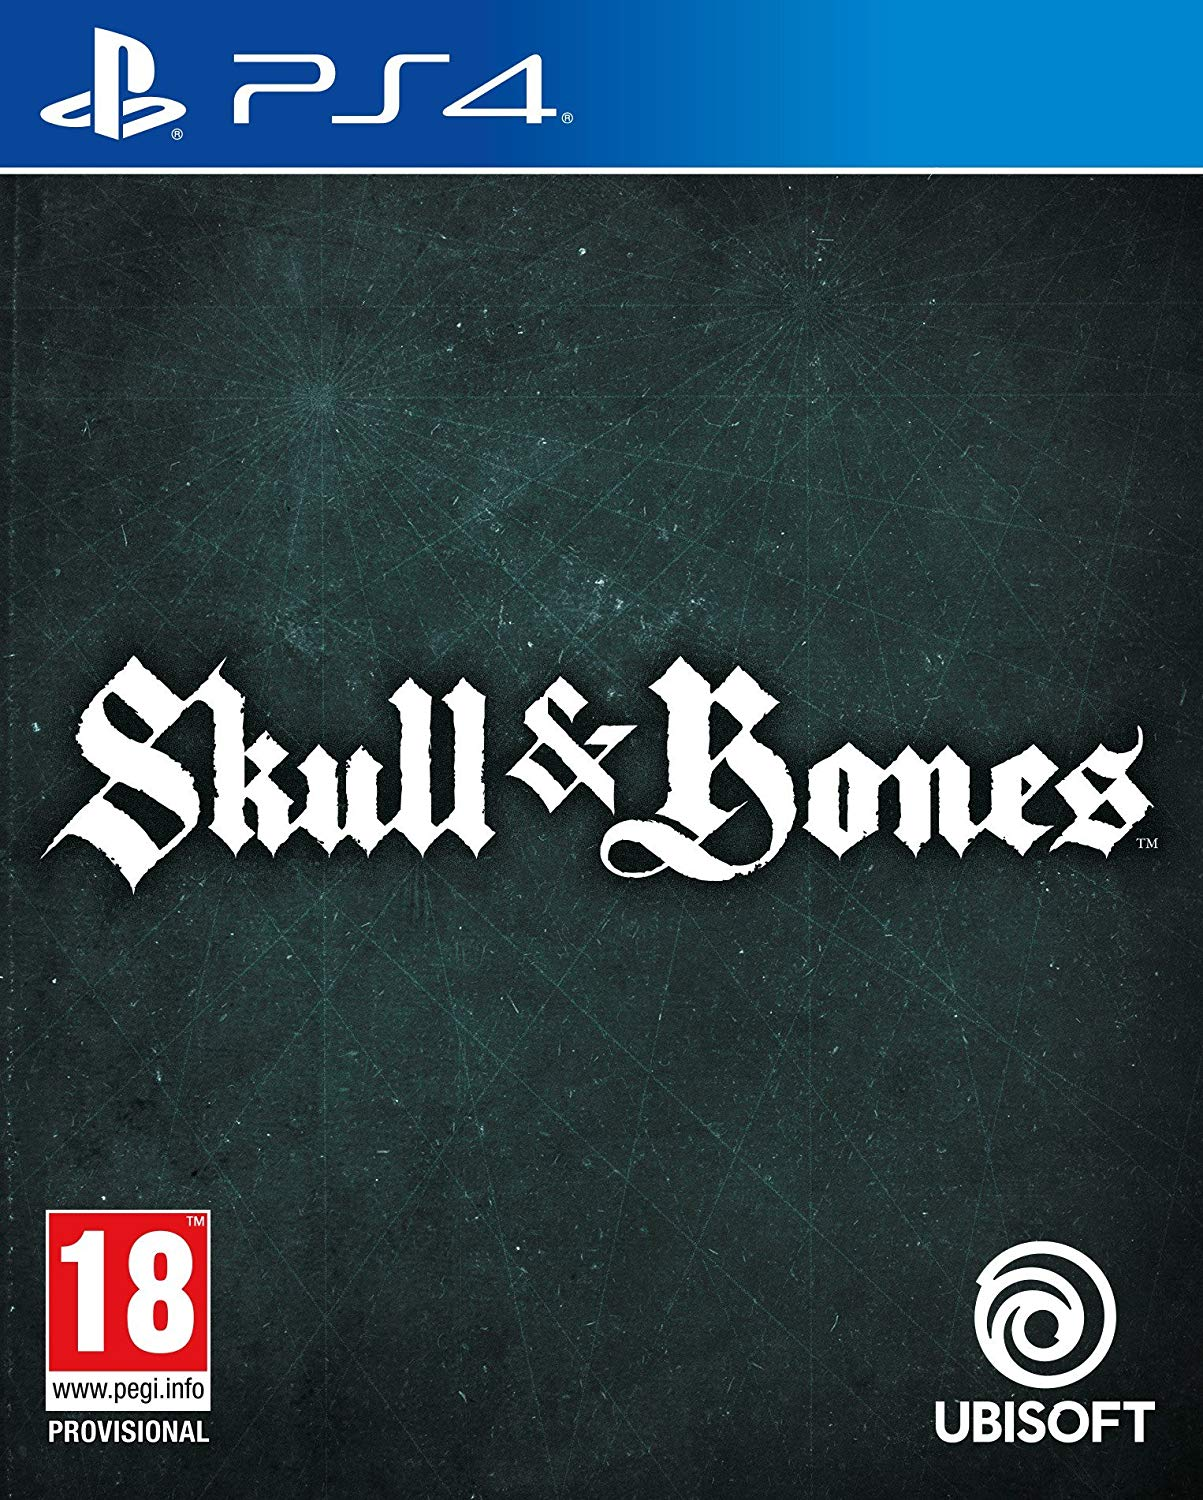 Box art - Skull and Bones